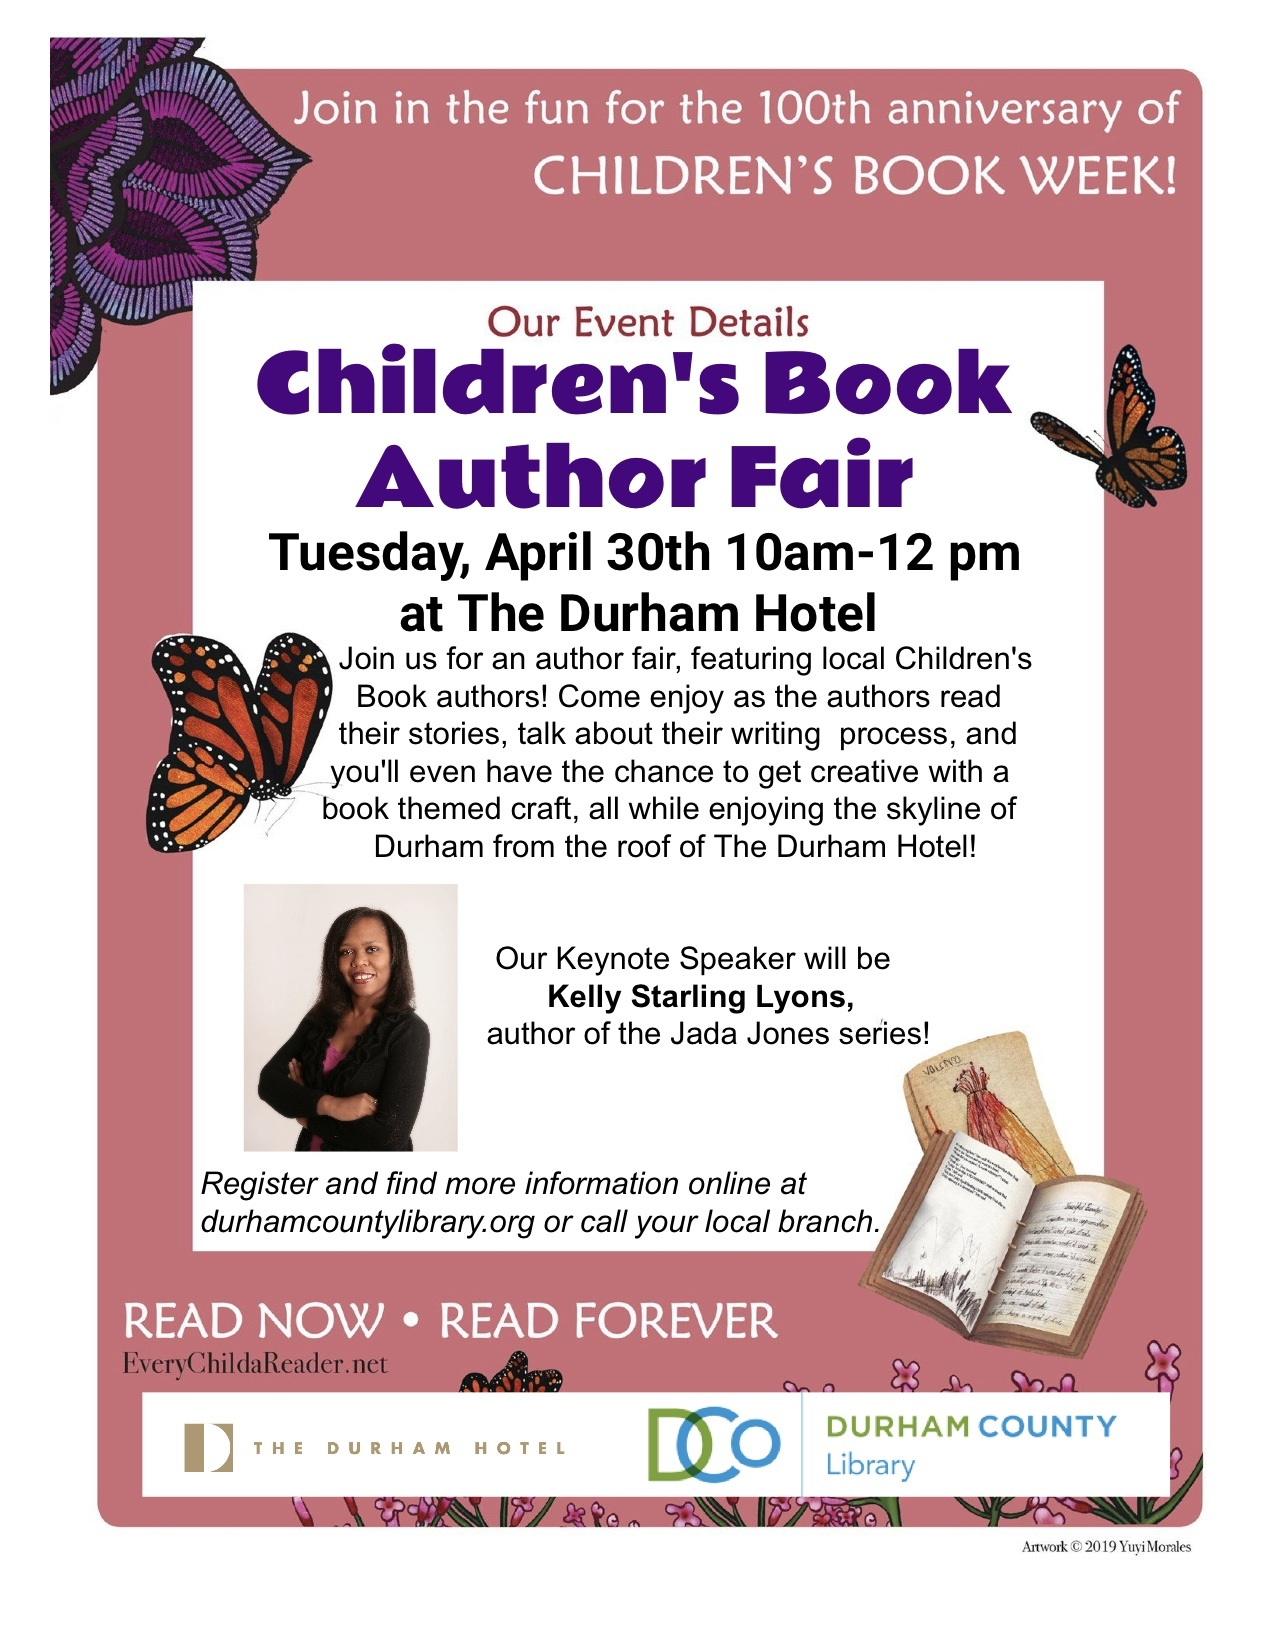 Durham County Children's Book Author Fair